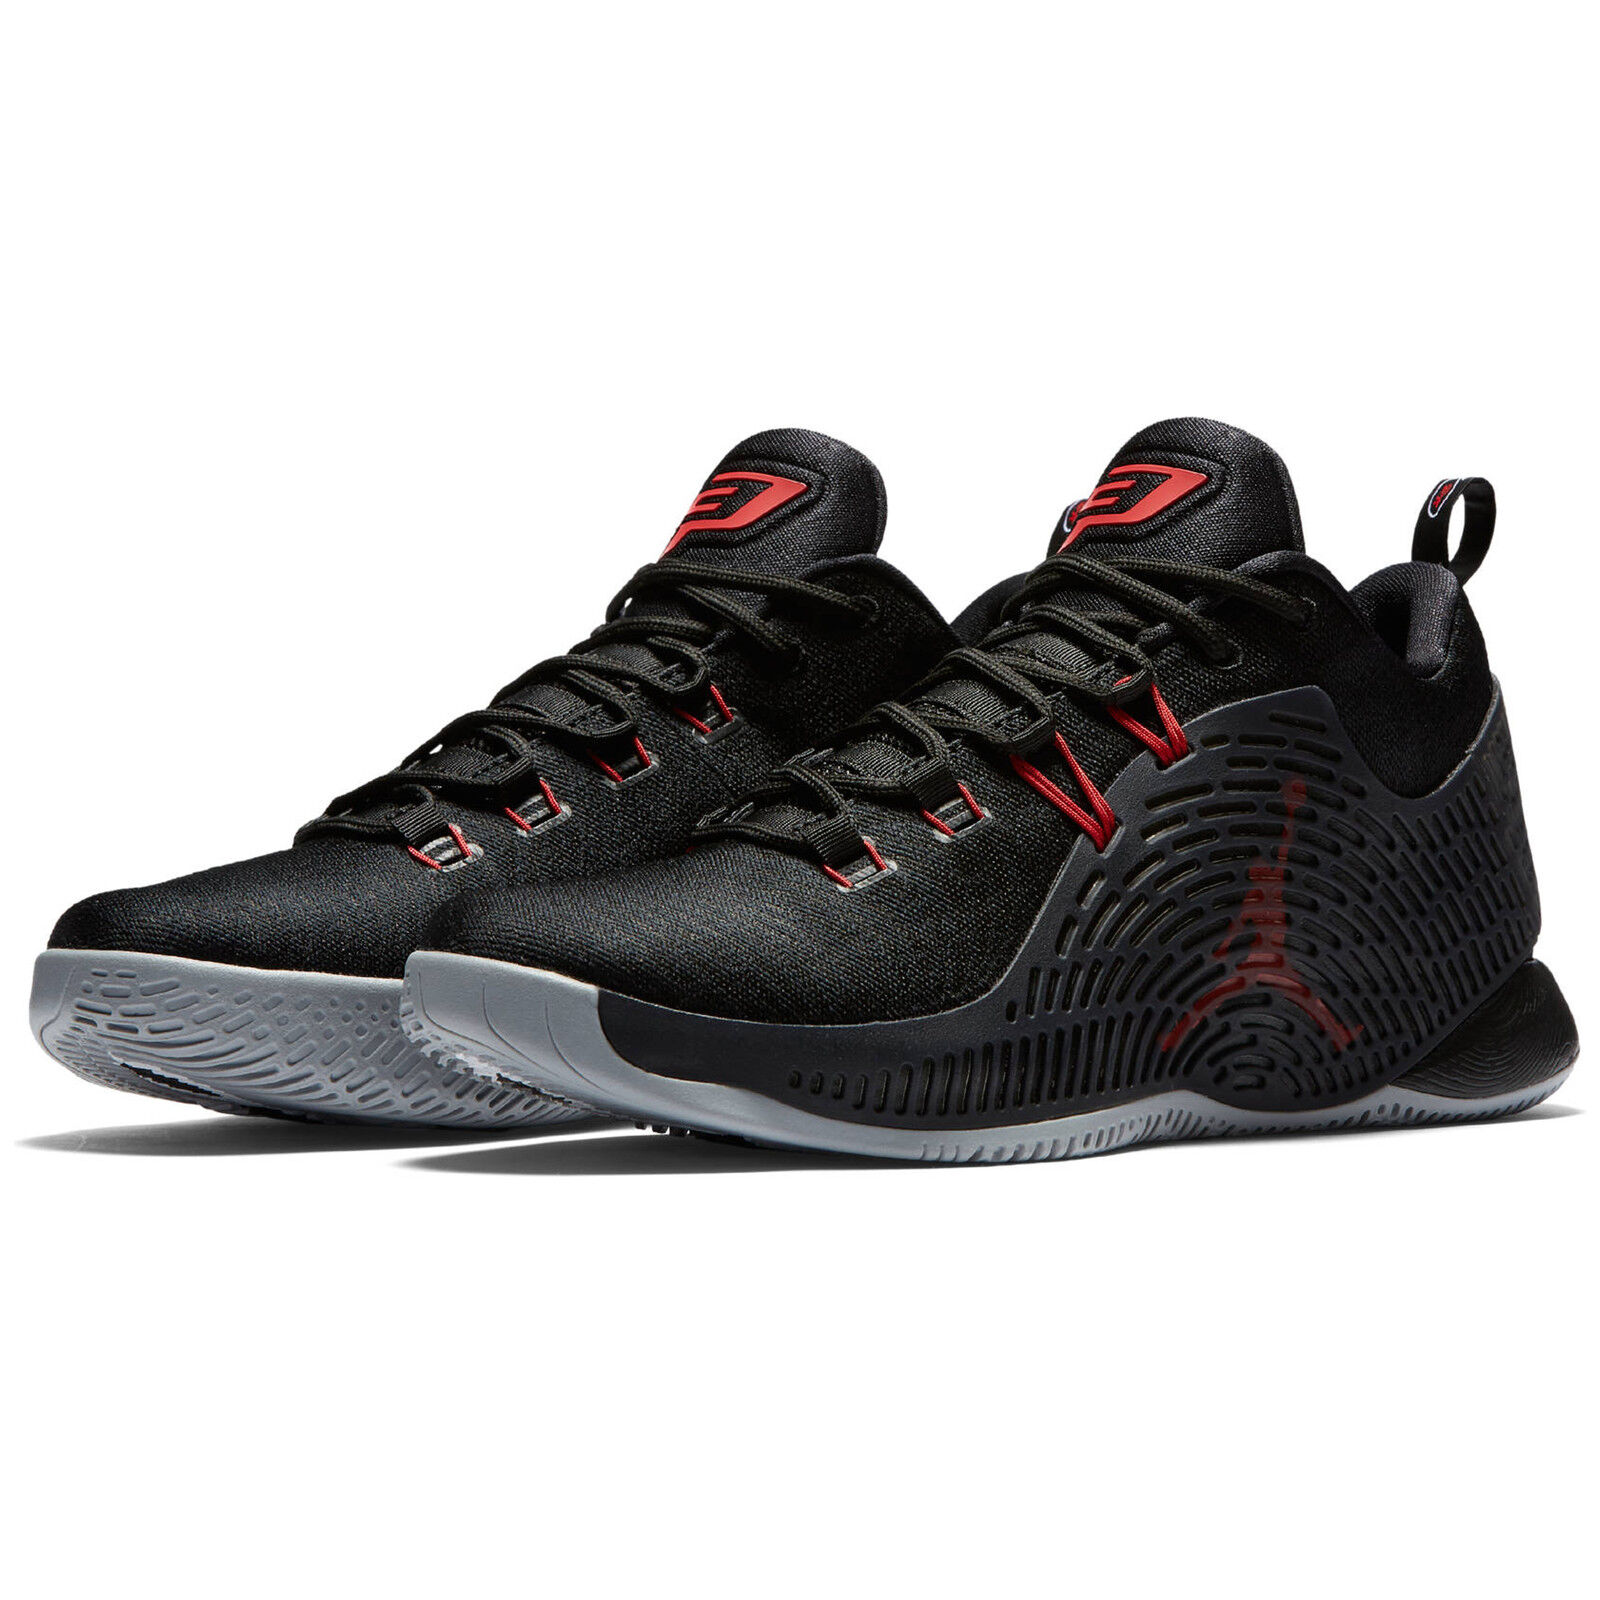 Nike Jordan cp3.x 854294-012 Basketball Leisure Lifestyle Shoes Great discount